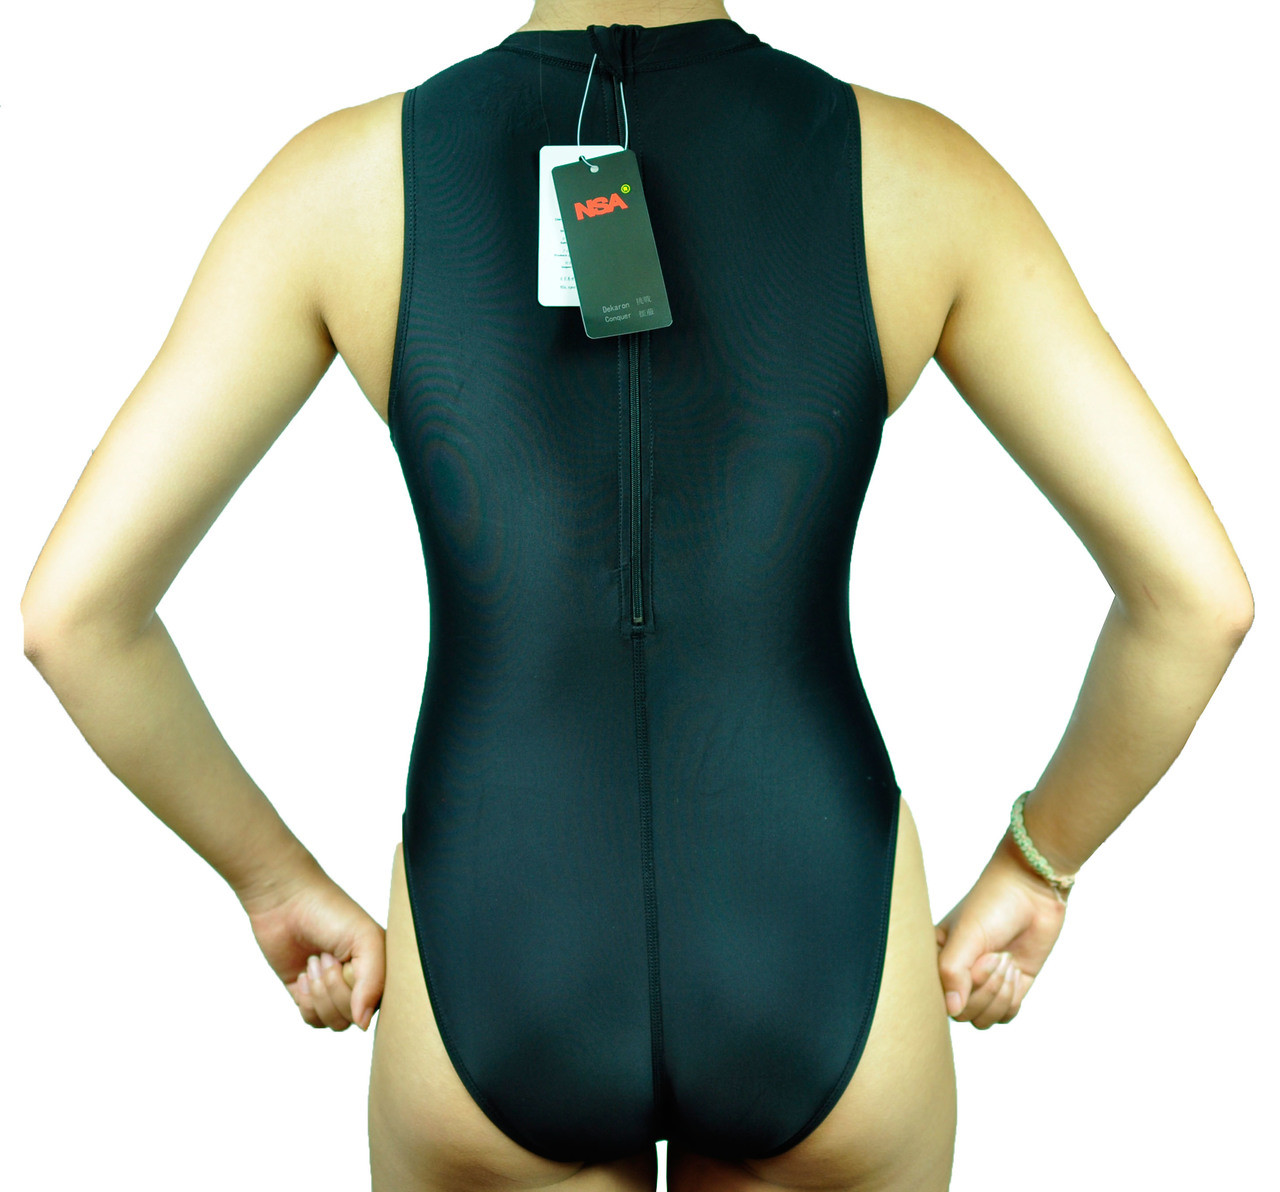 a797097fff855 Woman Lady Endurance Hi-Neck Zip-Up Hydrasuit Water Polo Swimwear Size 40  4XL. Price   40.79. Image 1